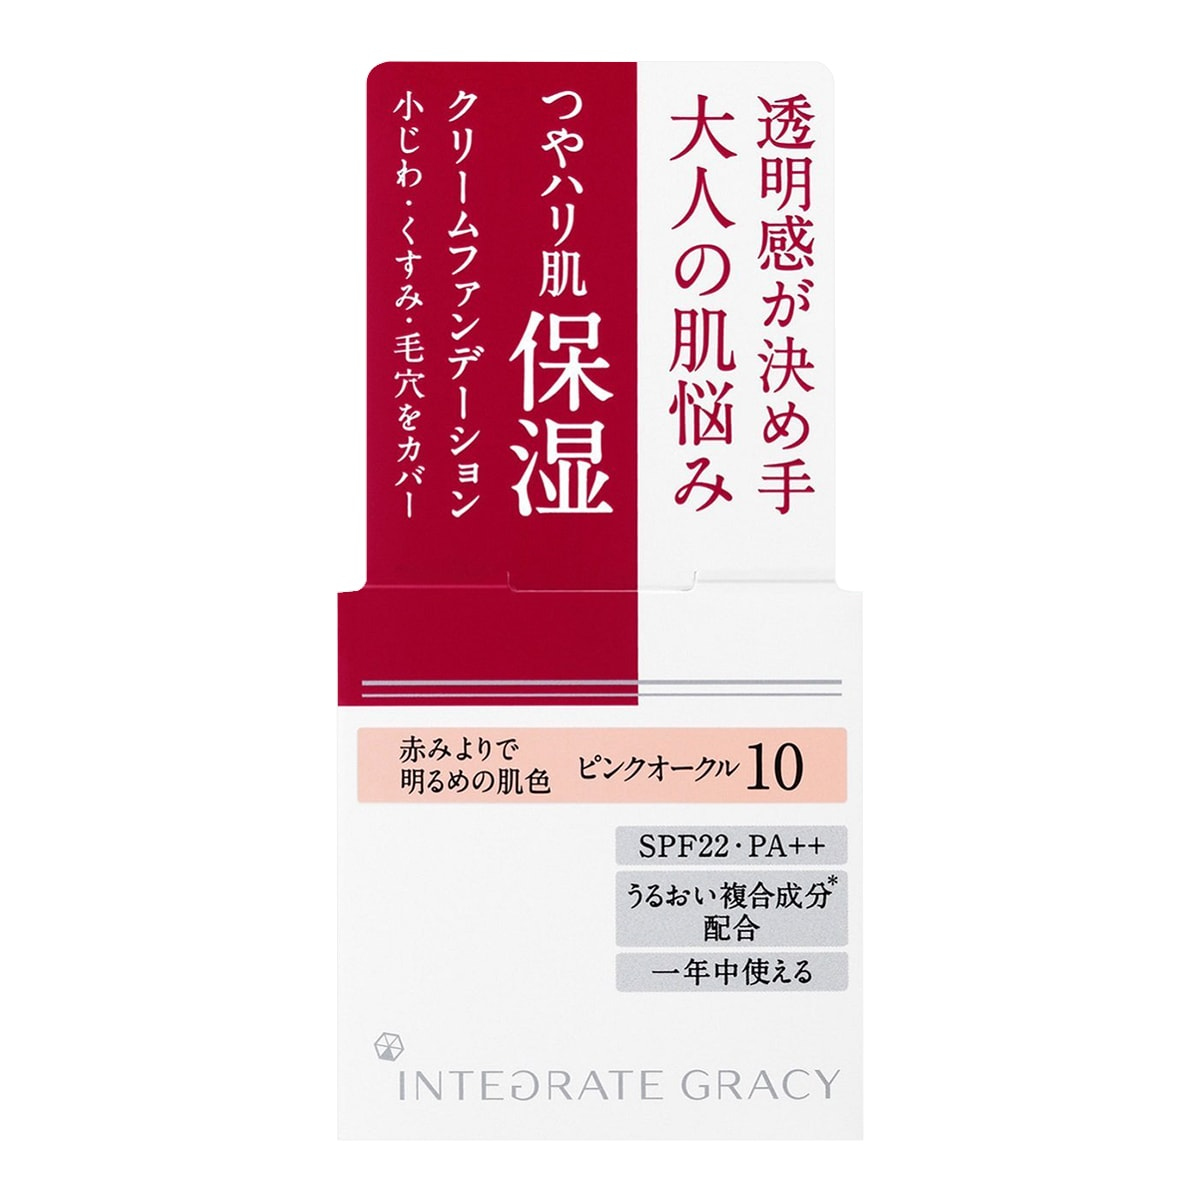 Yamibuy.com:Customer reviews:SHISEIDO INTEGRATE GRACY Moist Cream Foundation #PO10